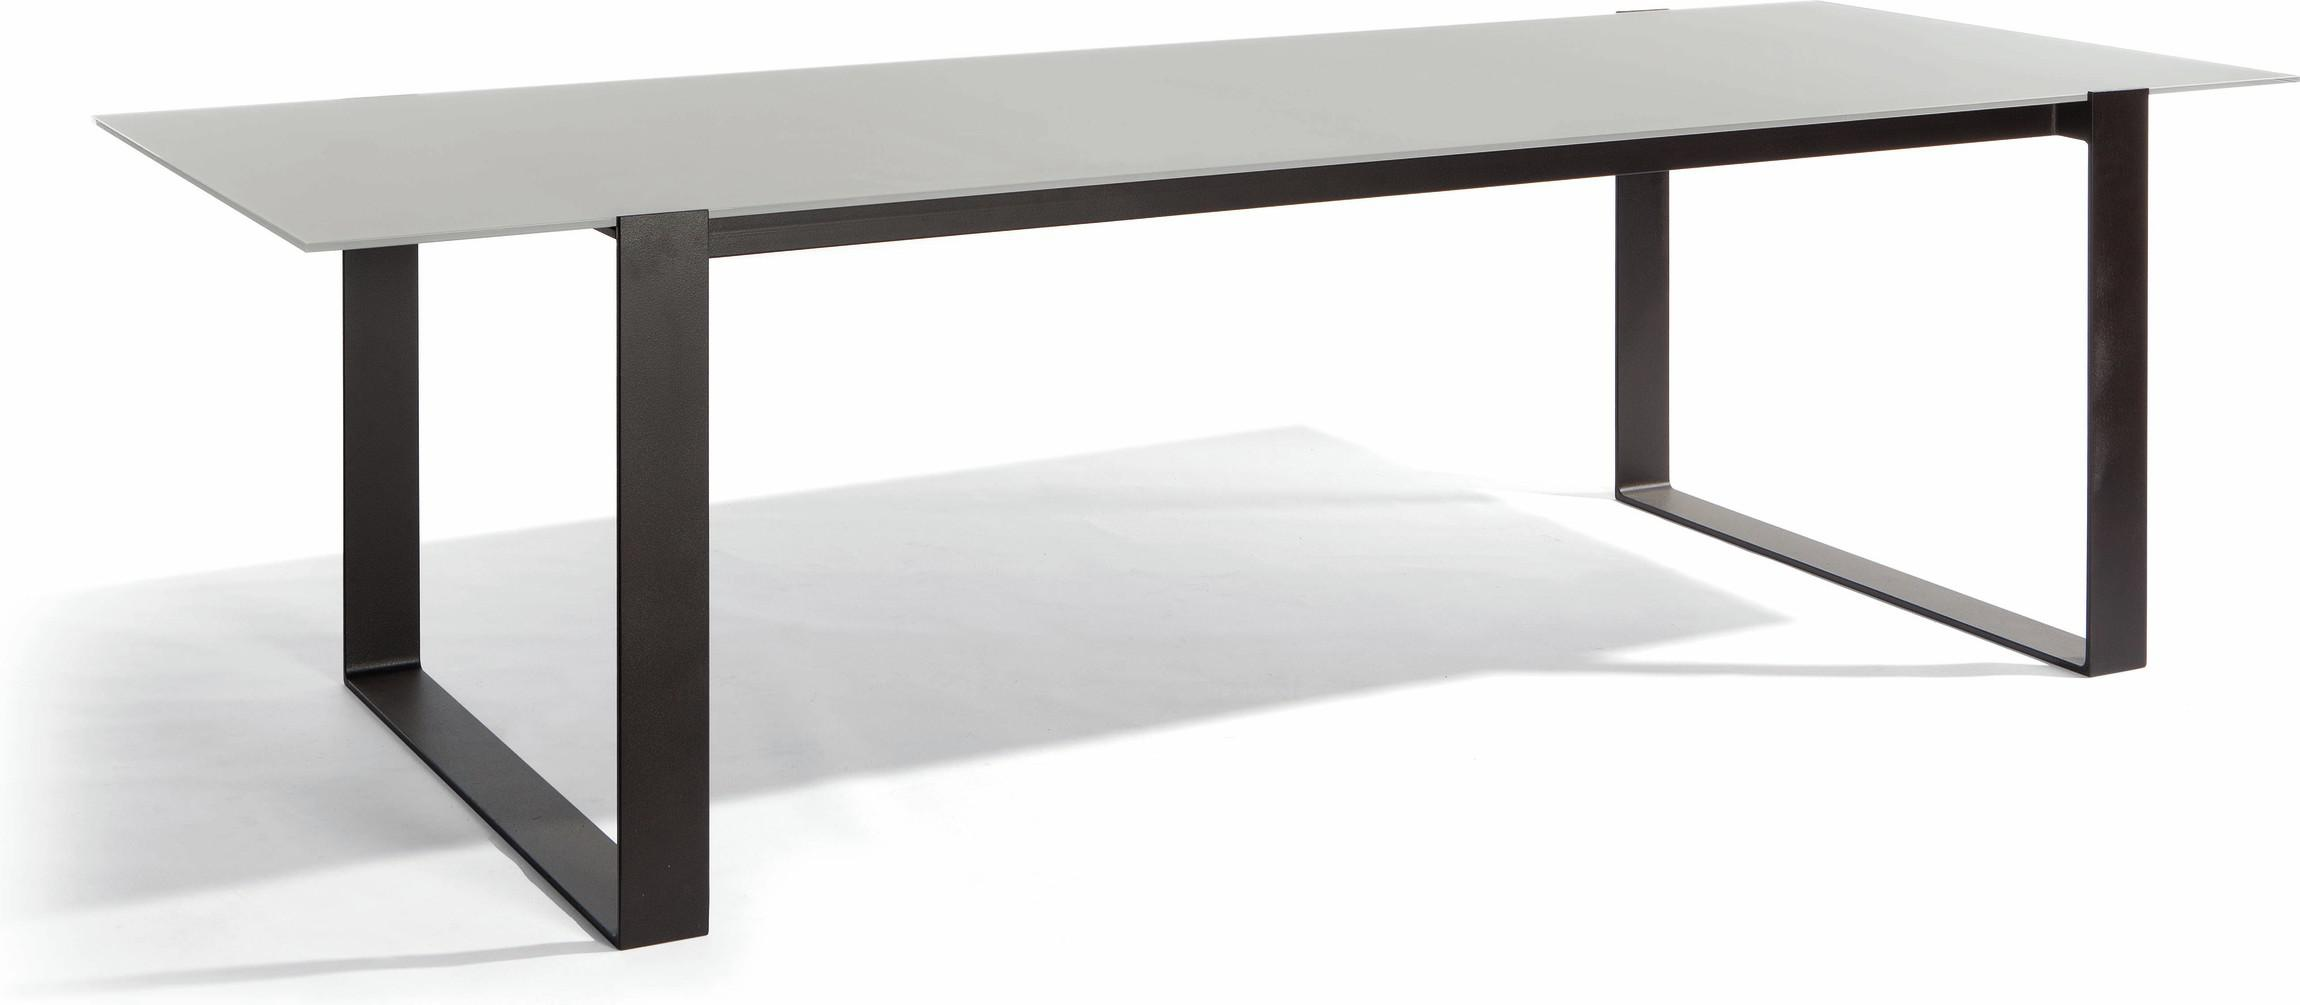 Prato Dining table - lava - GLS 270